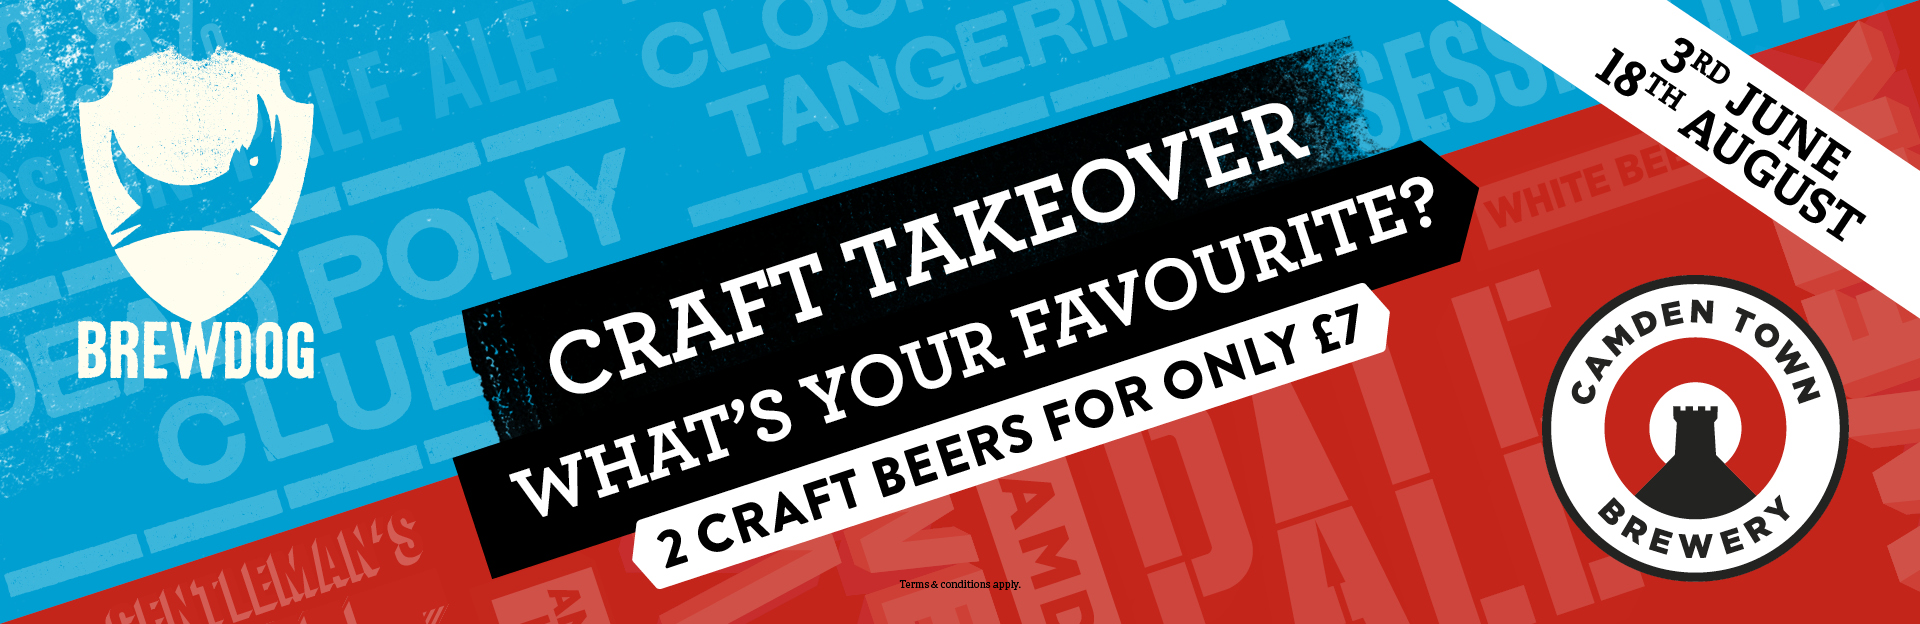 Craft Takeover at The Beverley Hotel